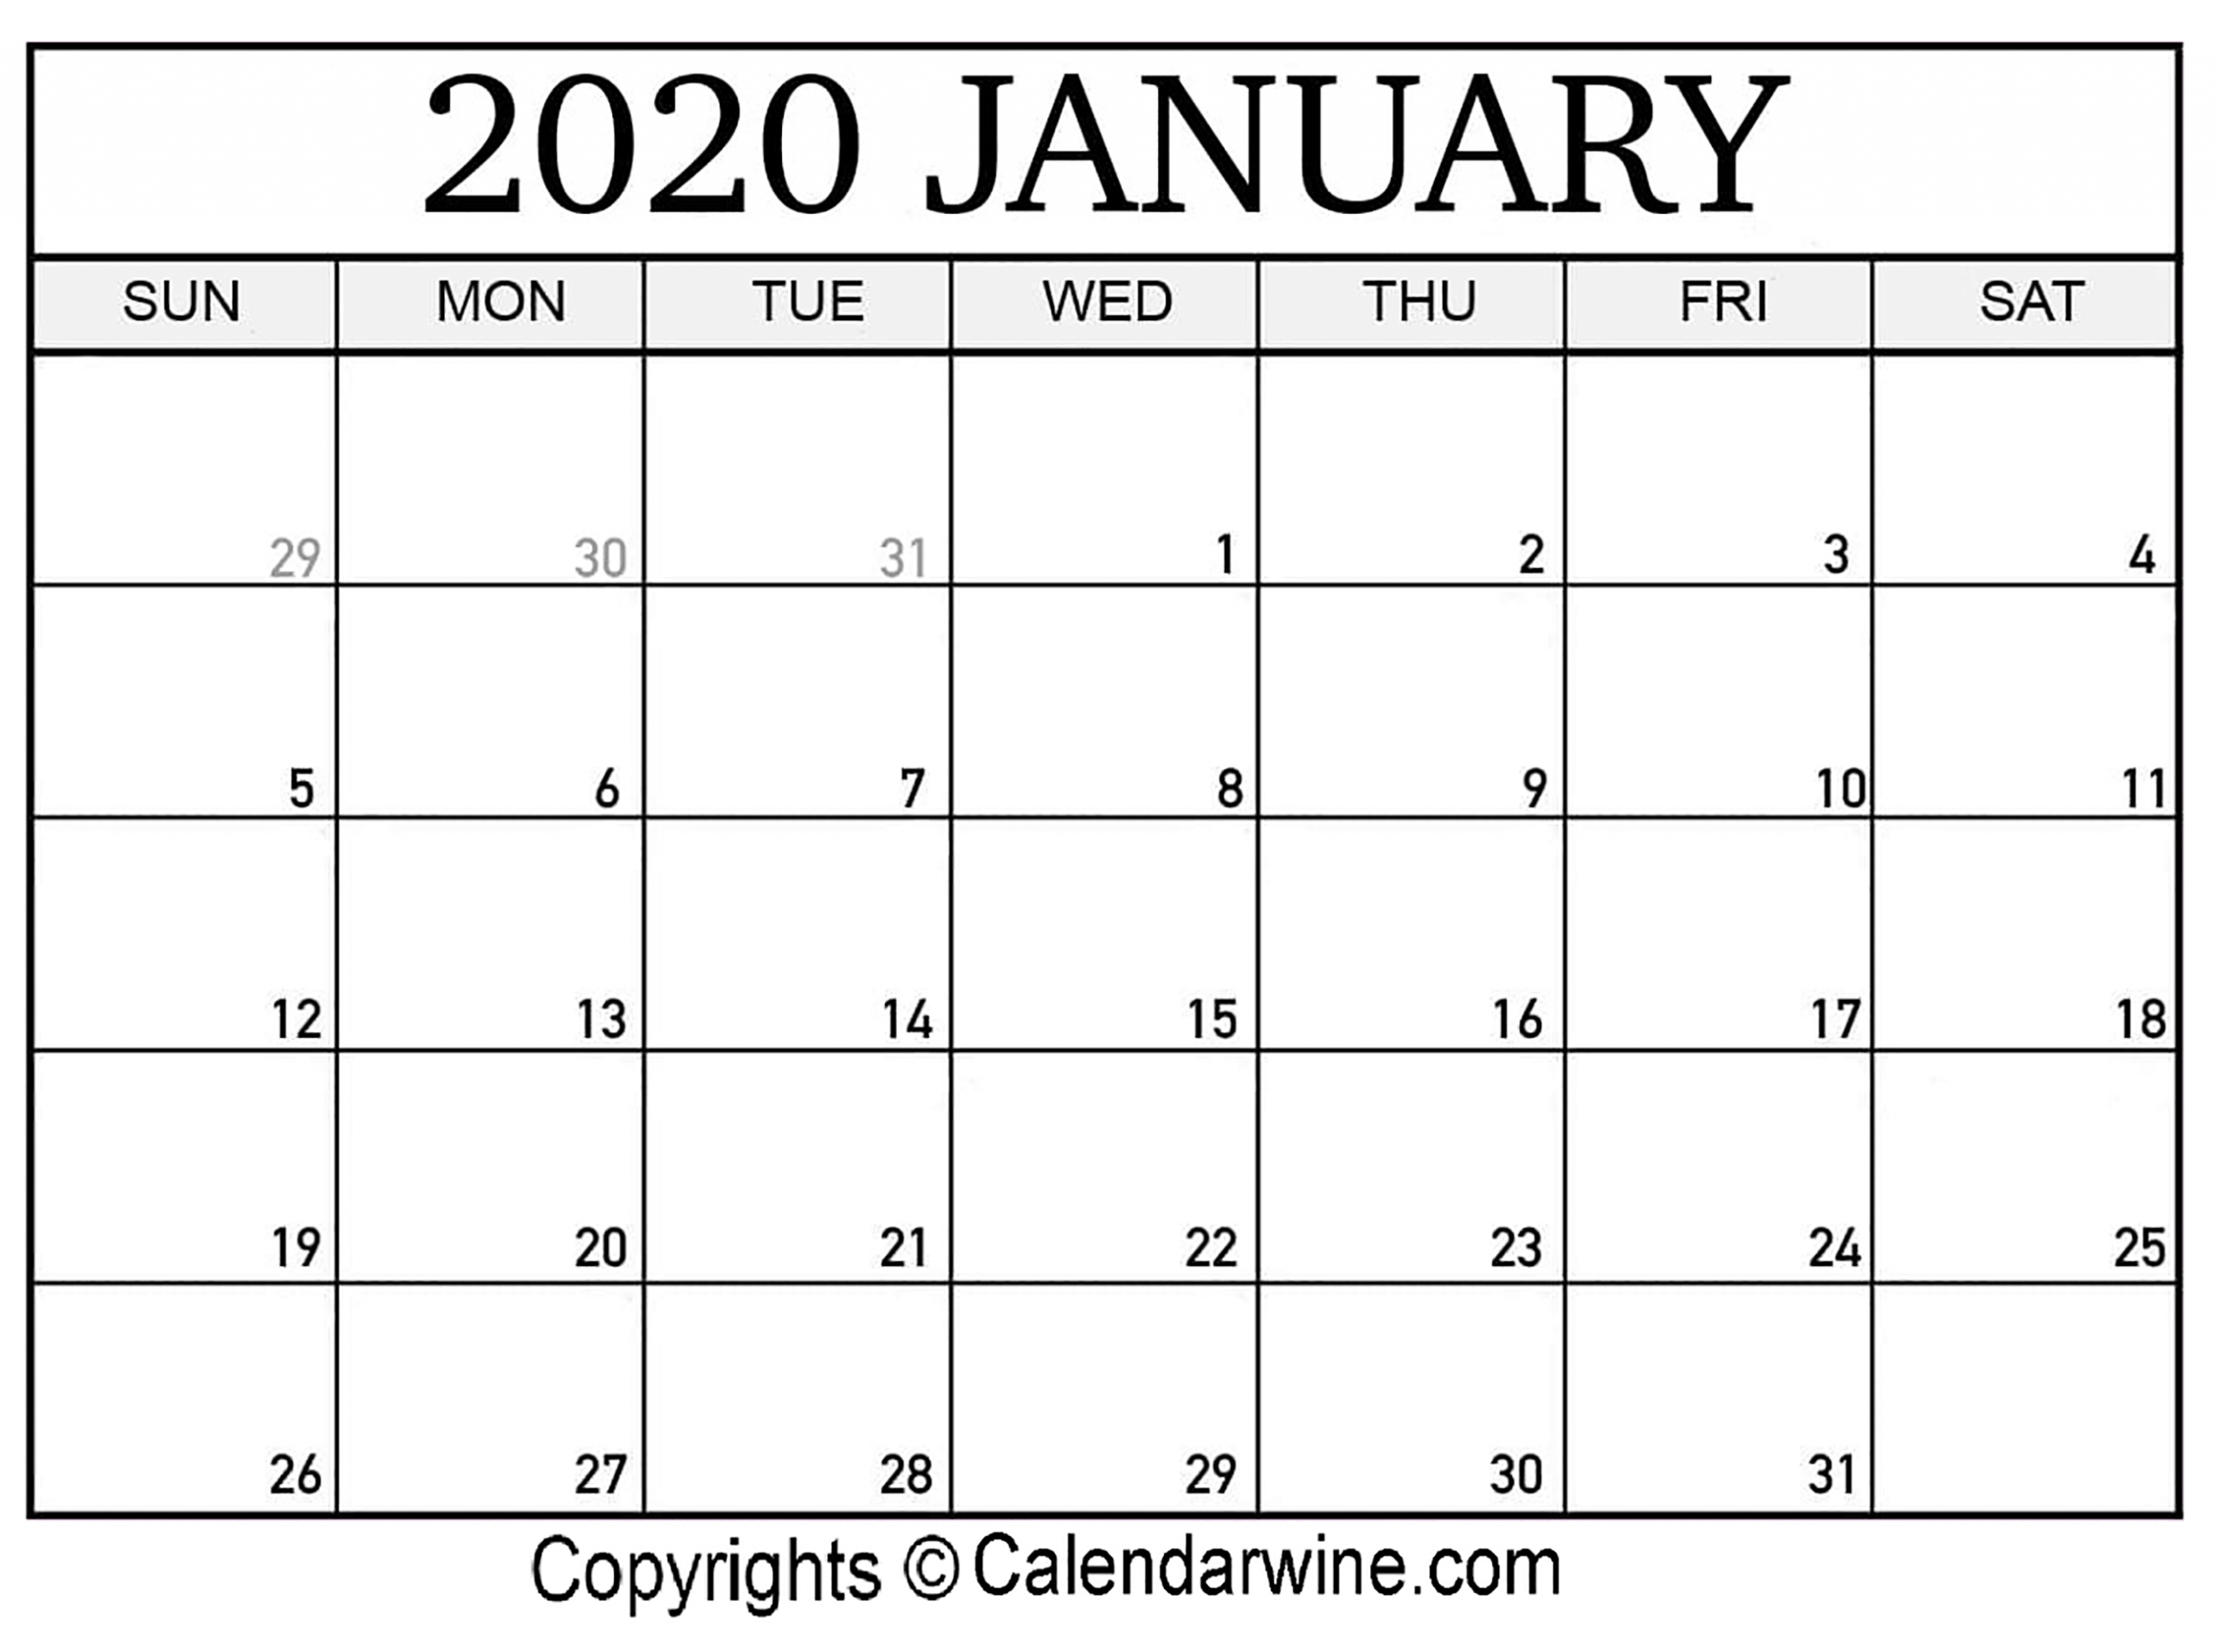 Julian Calendar January 2020 | Free Printable Calendar